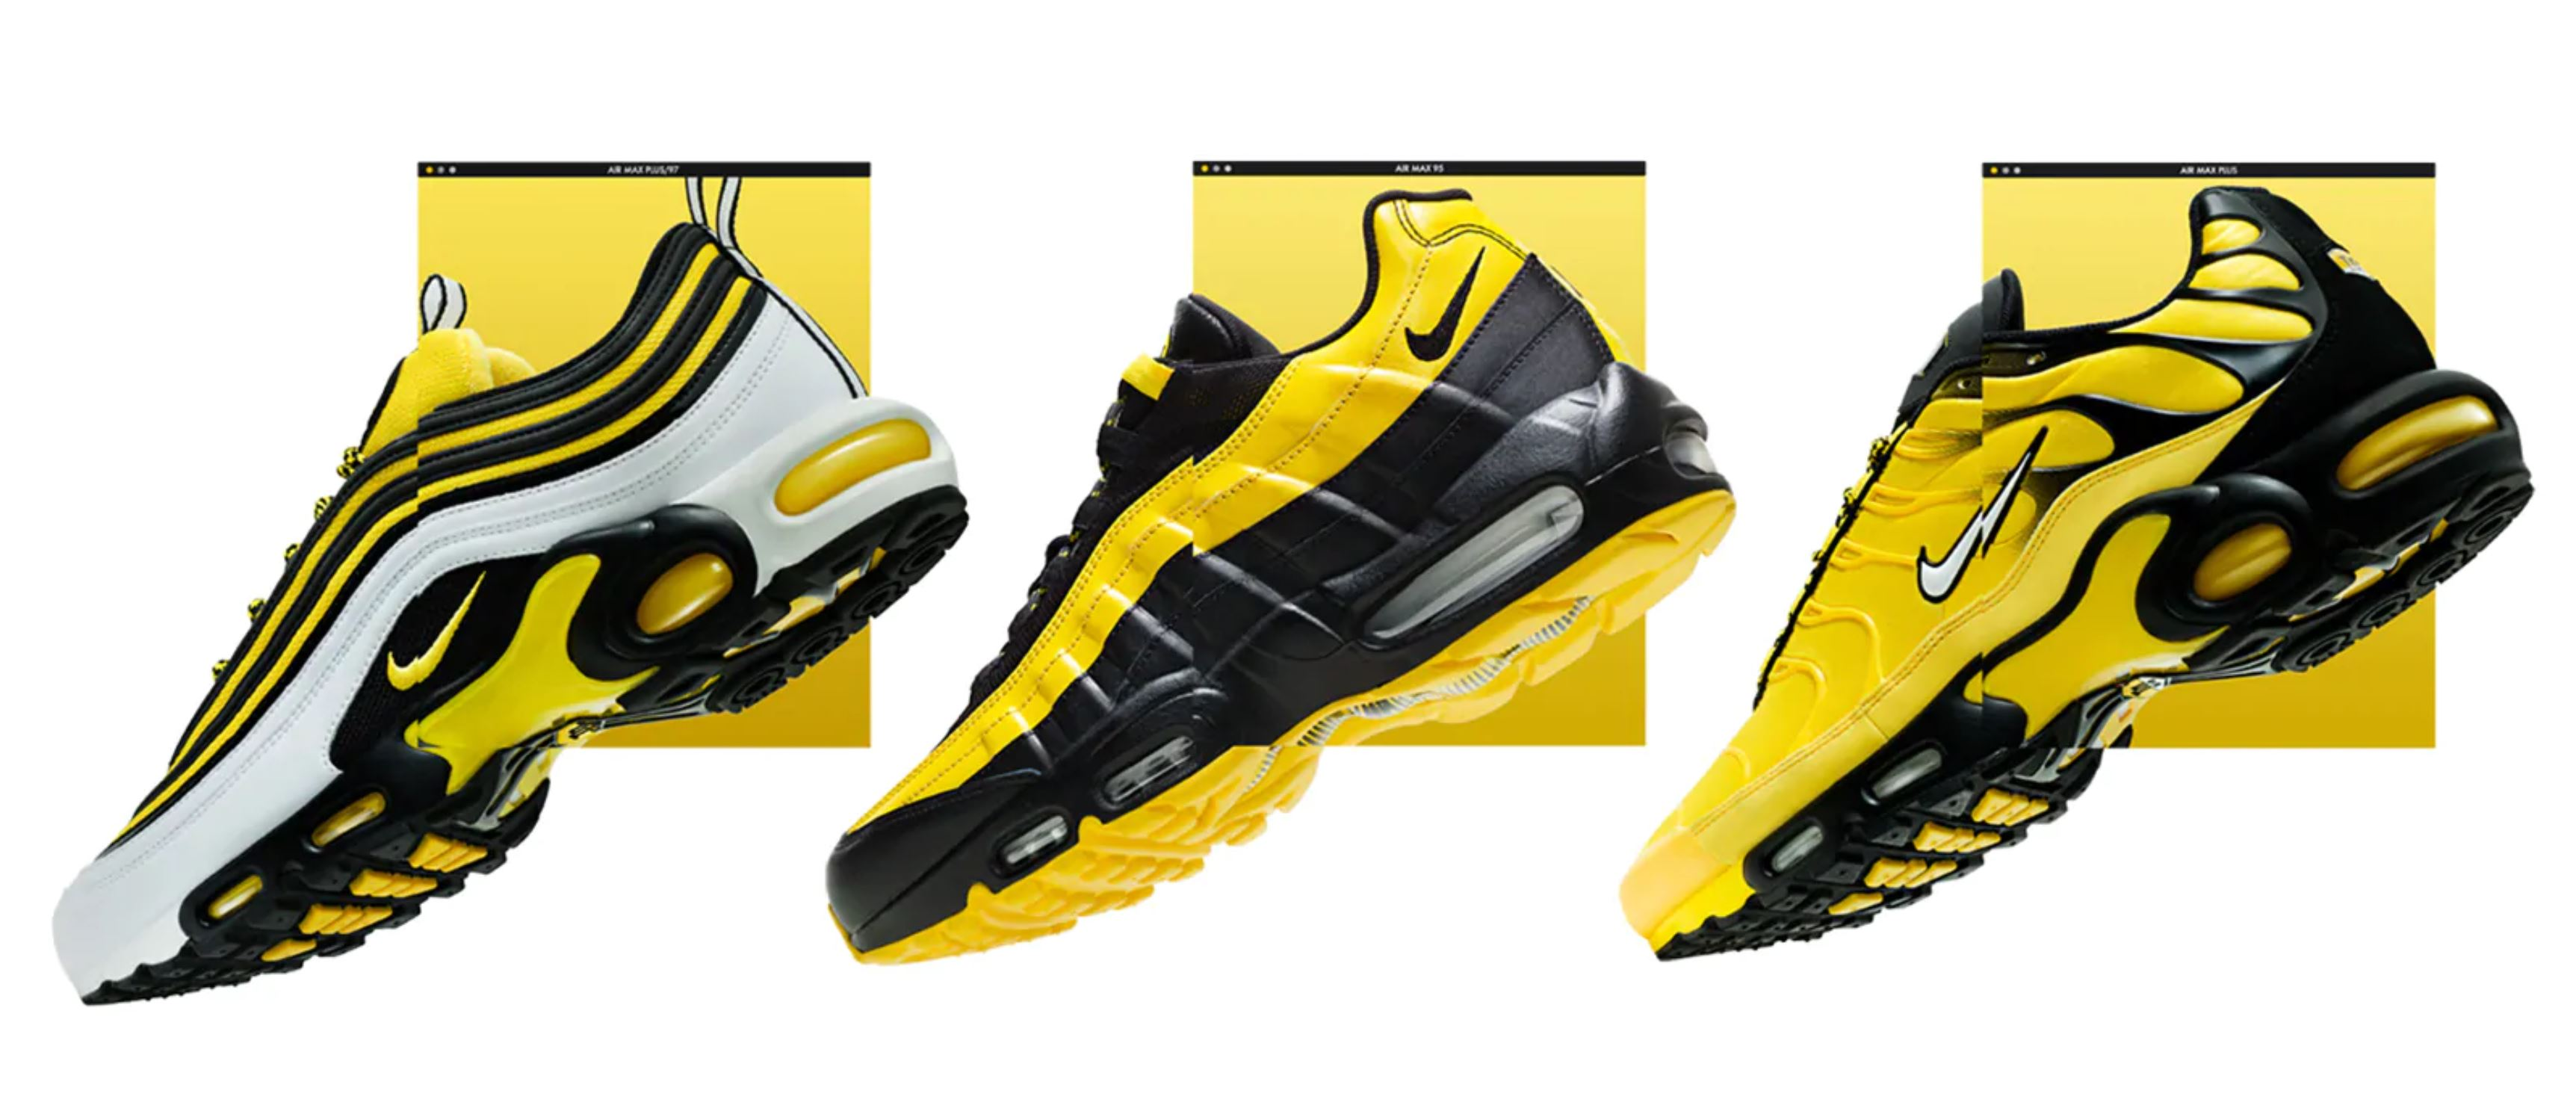 c6c7e8c0c5 The Foot Locker x Nike Air Max Frequency Pack is Available Now ...